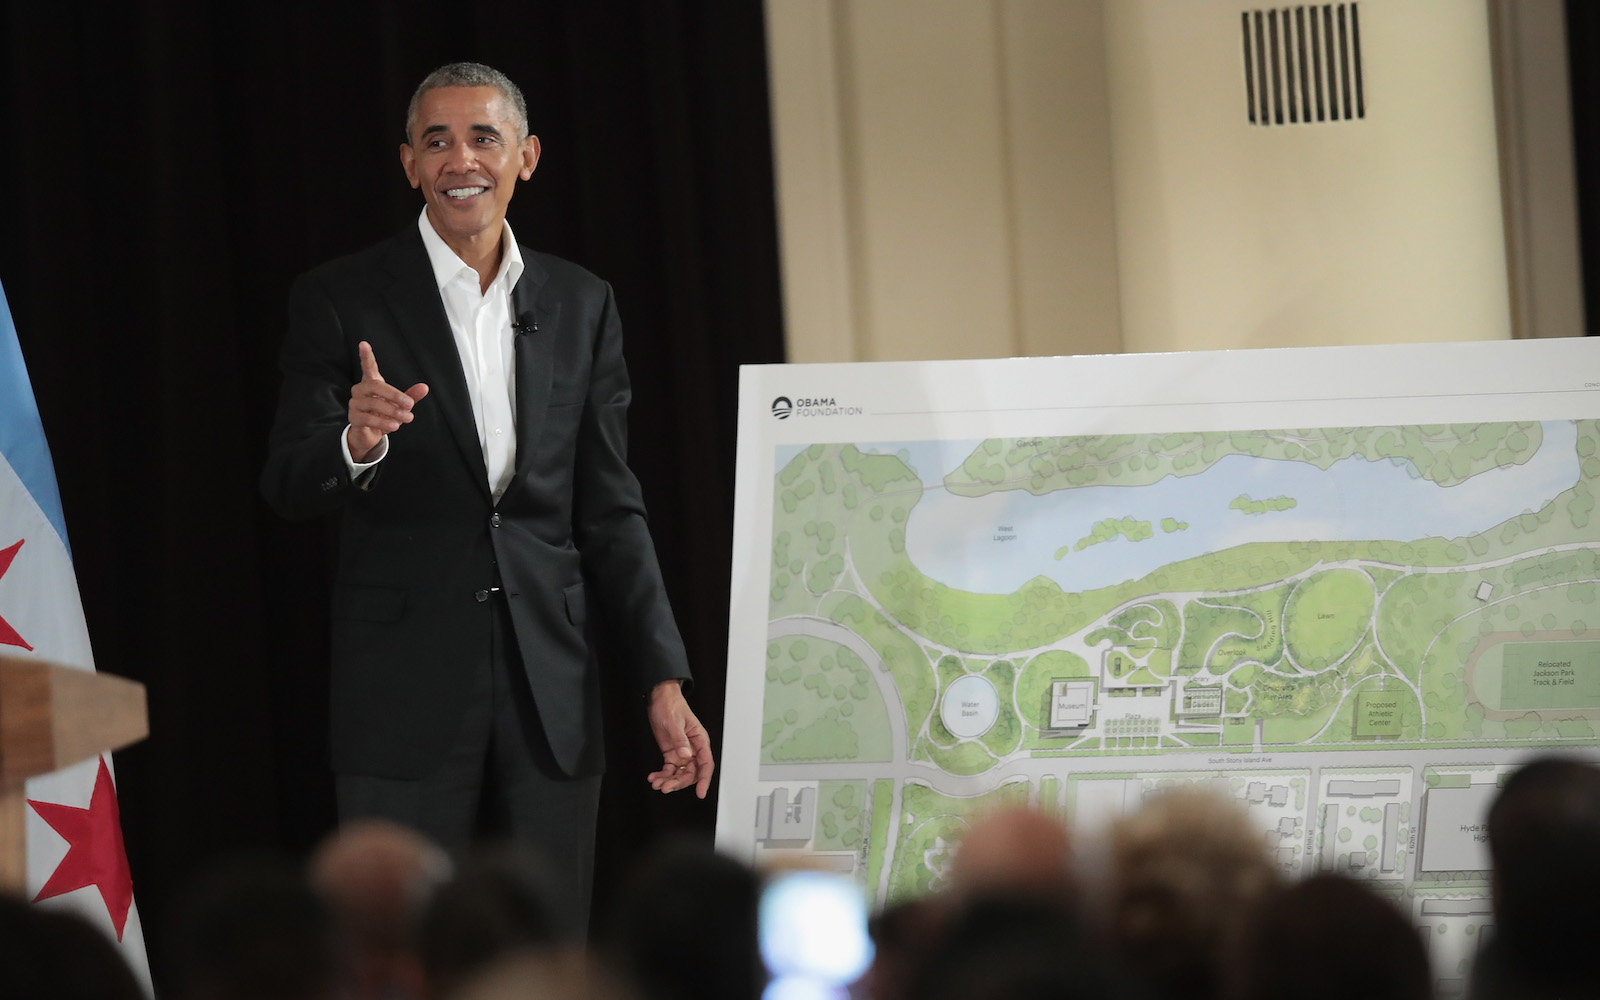 CHICAGO, IL - MAY 03:  Former President Barack Obama points out features of the proposed Obama Presidential Center, which is scheduled to be built in nearby Jackson Park, during a gathering at the South Shore Cultural Center on May 3, 2017 in Chicago, Ill